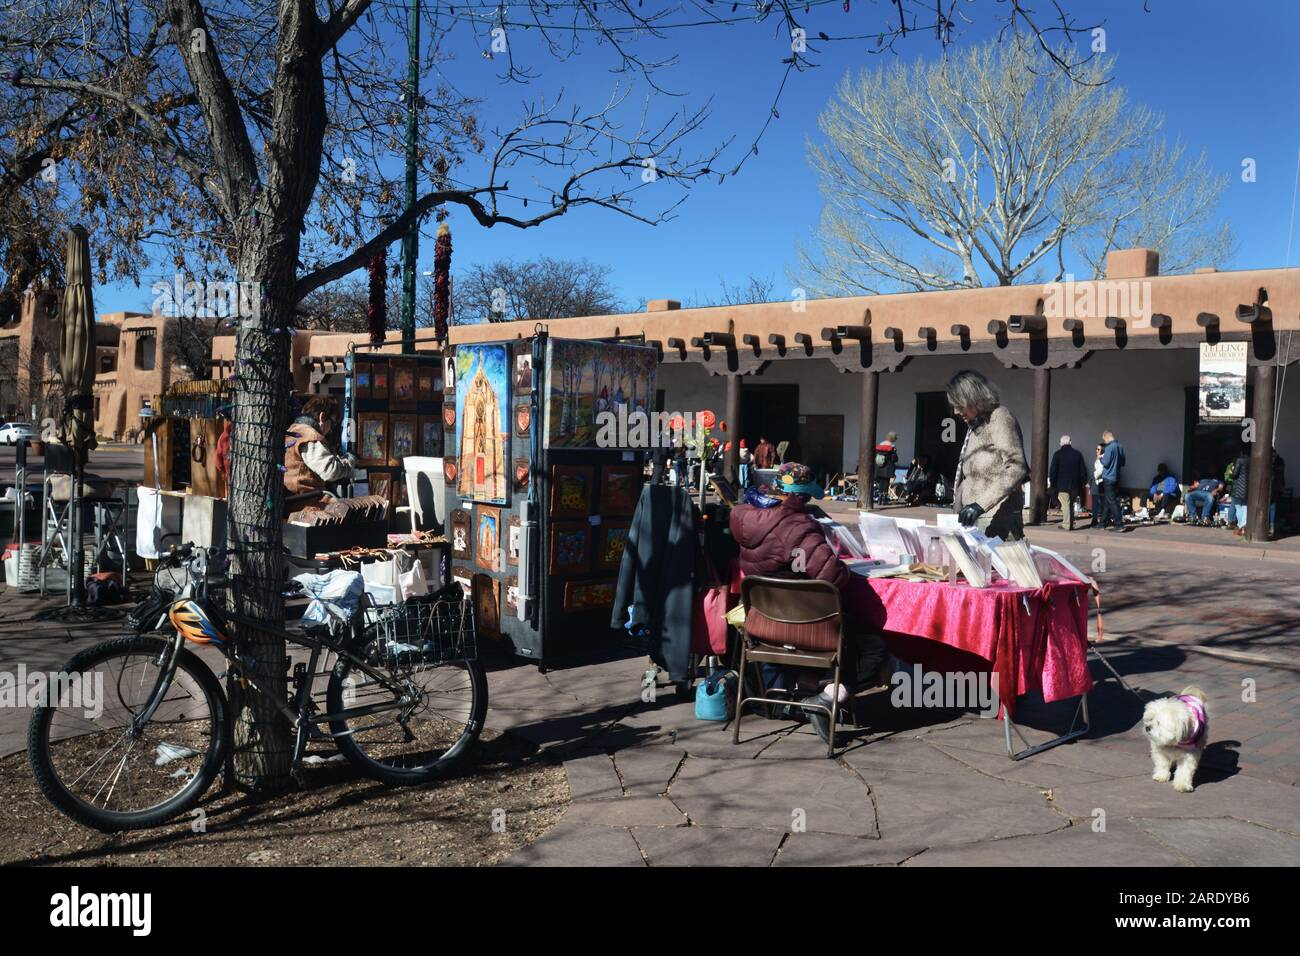 Artists Sell Their Artworks Near The Historic Palace Of The Governors In Santa Fe New Mexico Stock Photo Alamy